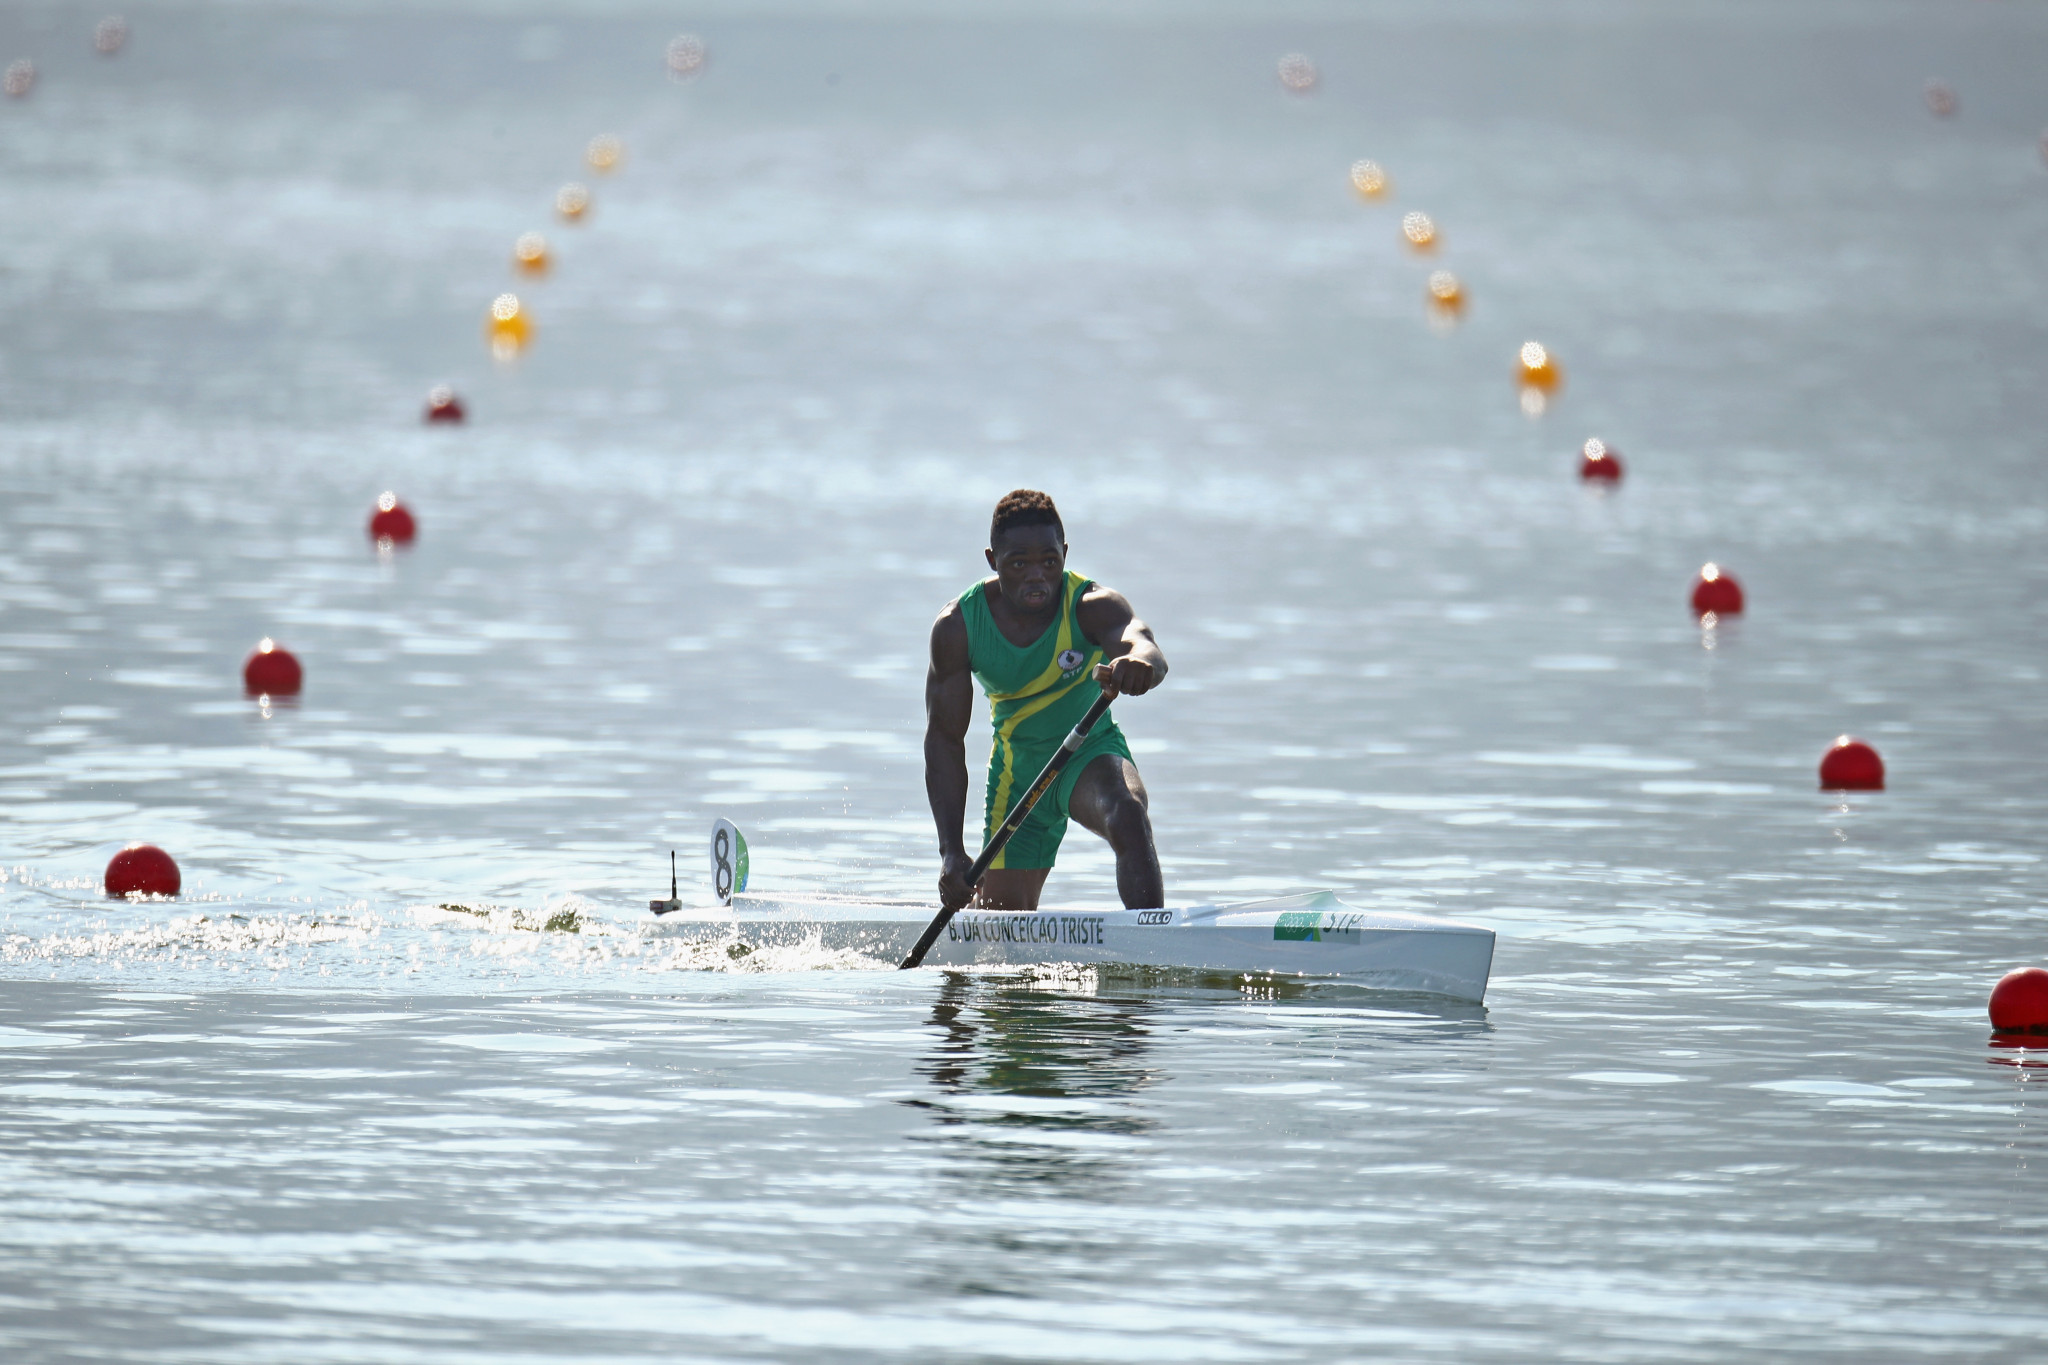 Buly Triste represented São Tomé and Príncipe at the Rio 2016 in canoe sprint ©Getty Images